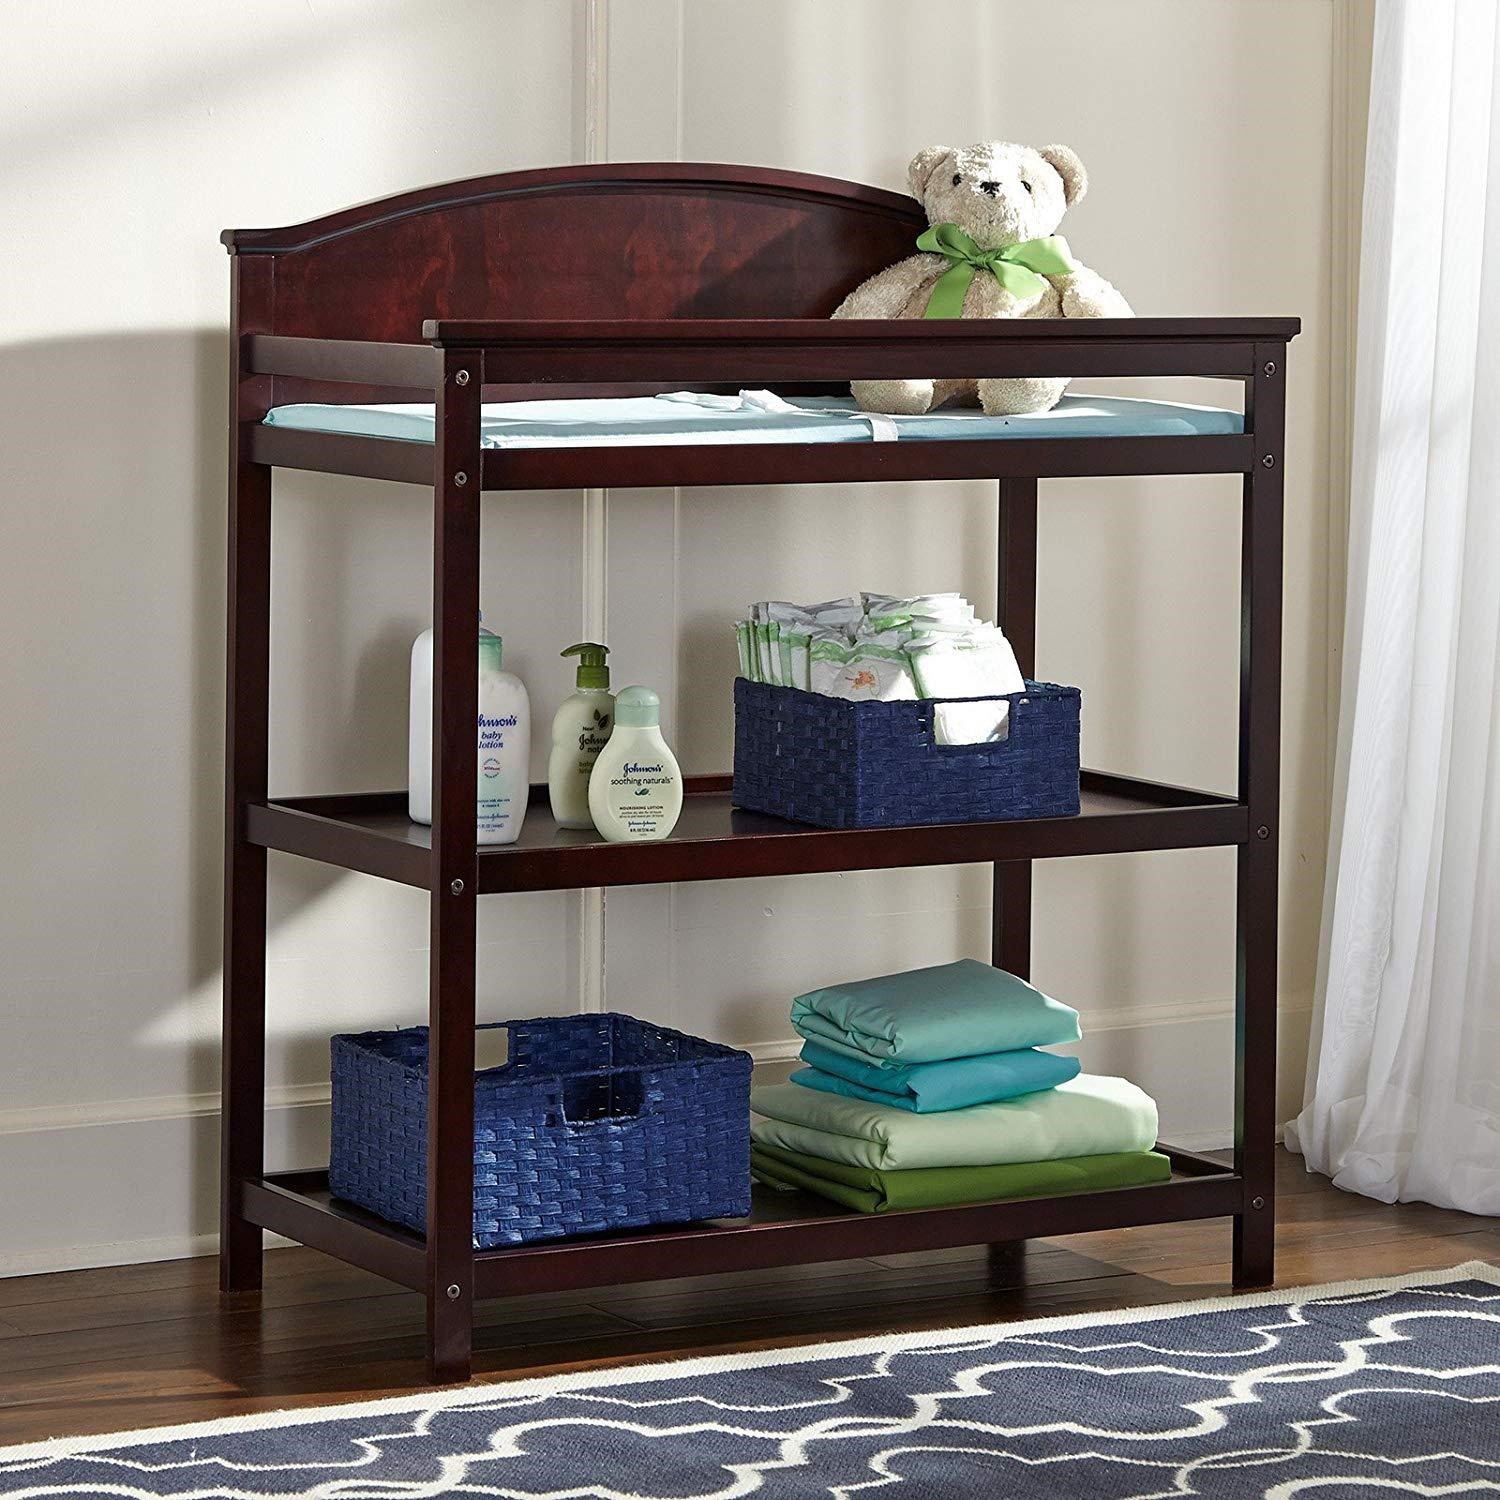 Harrison Harrison Changing Table by Westwood Design at Morris Home